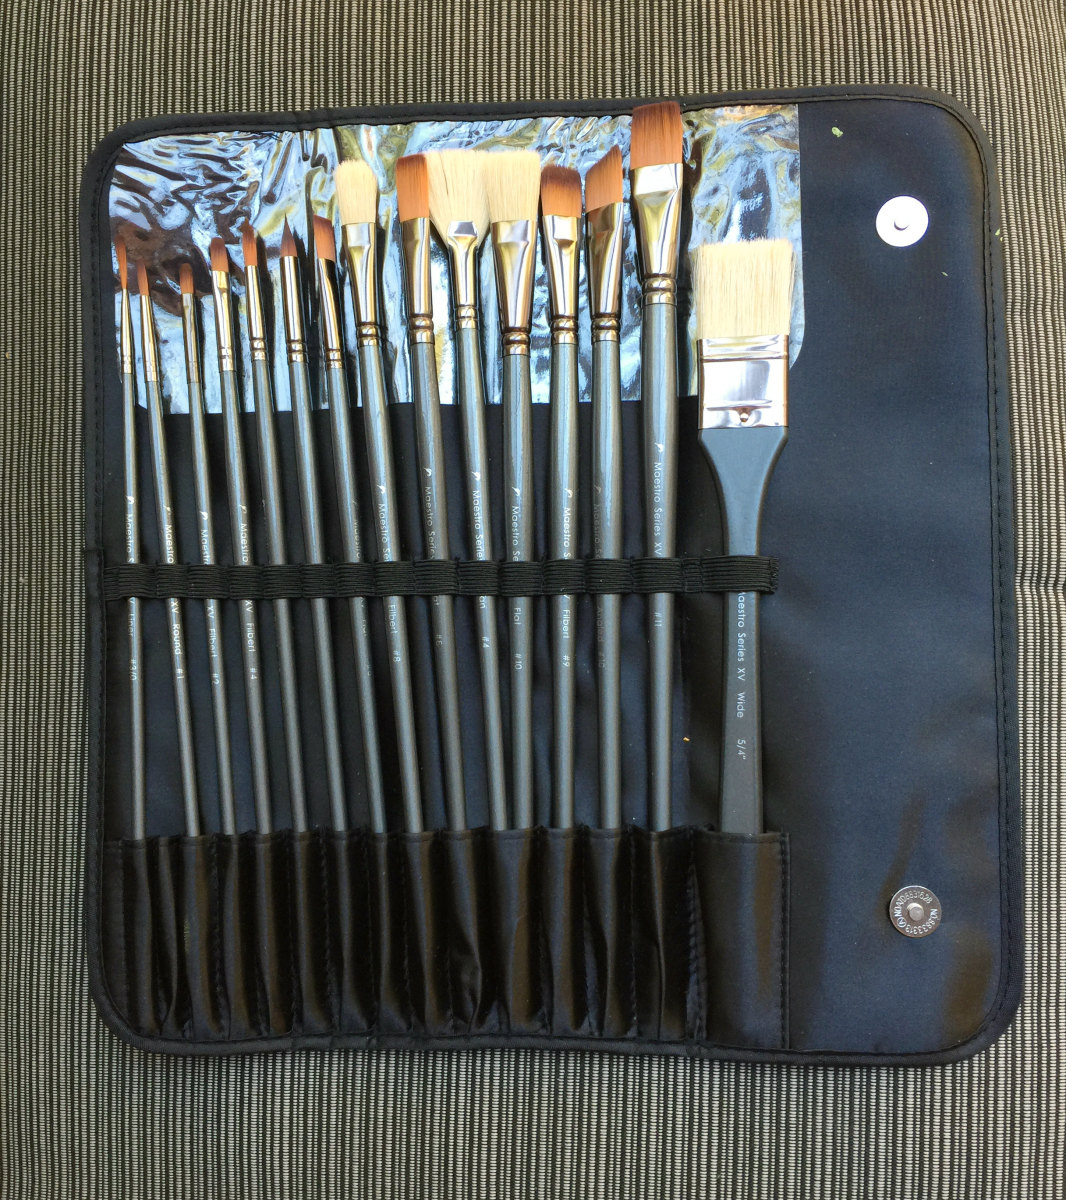 Or you may keep then in a brush case, also handy for traveling.